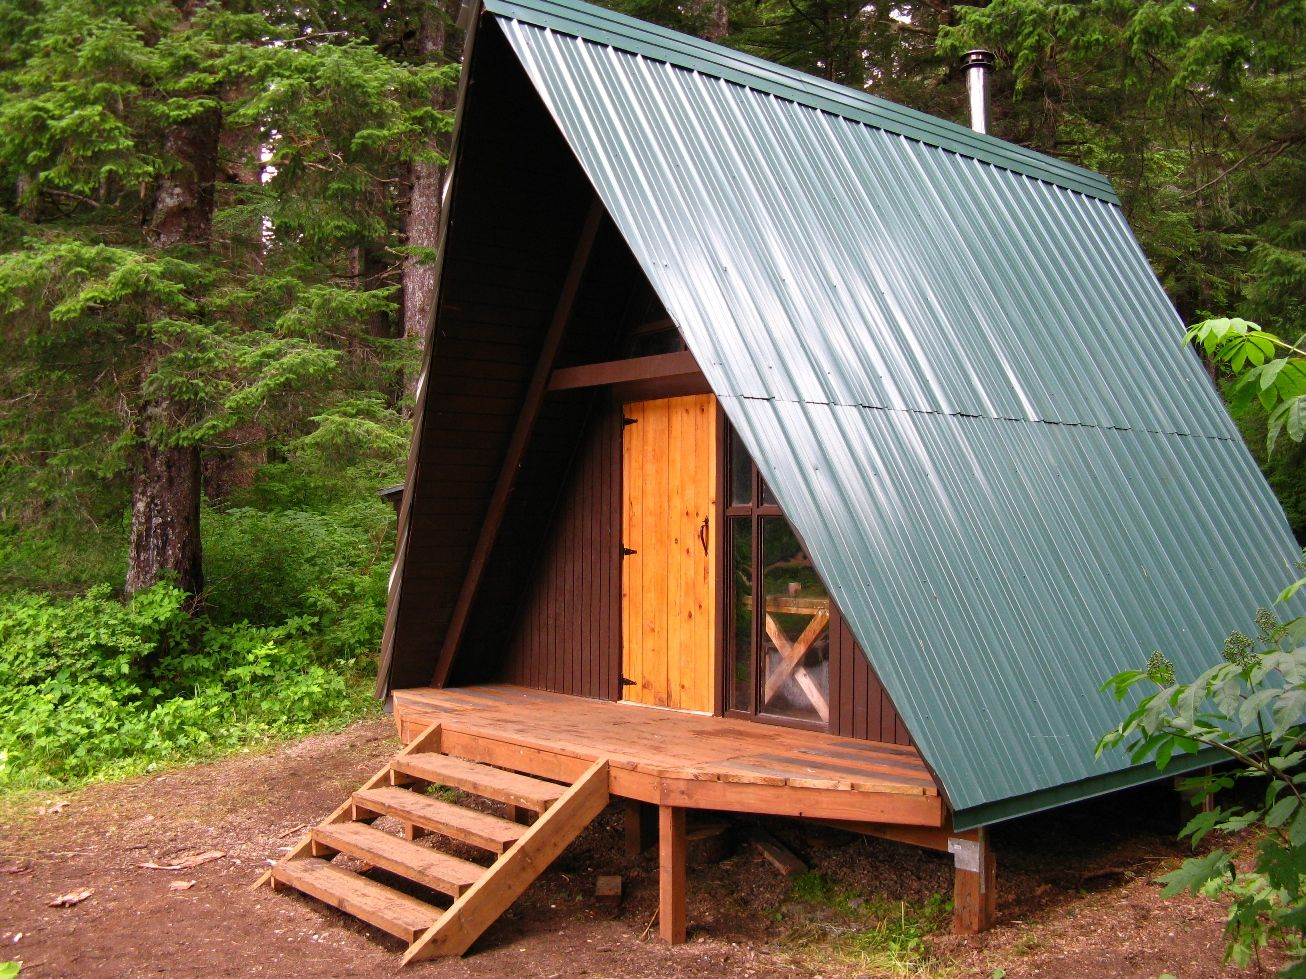 Small cabin option land ideas pinterest cabin for Pictures of small hunting cabins